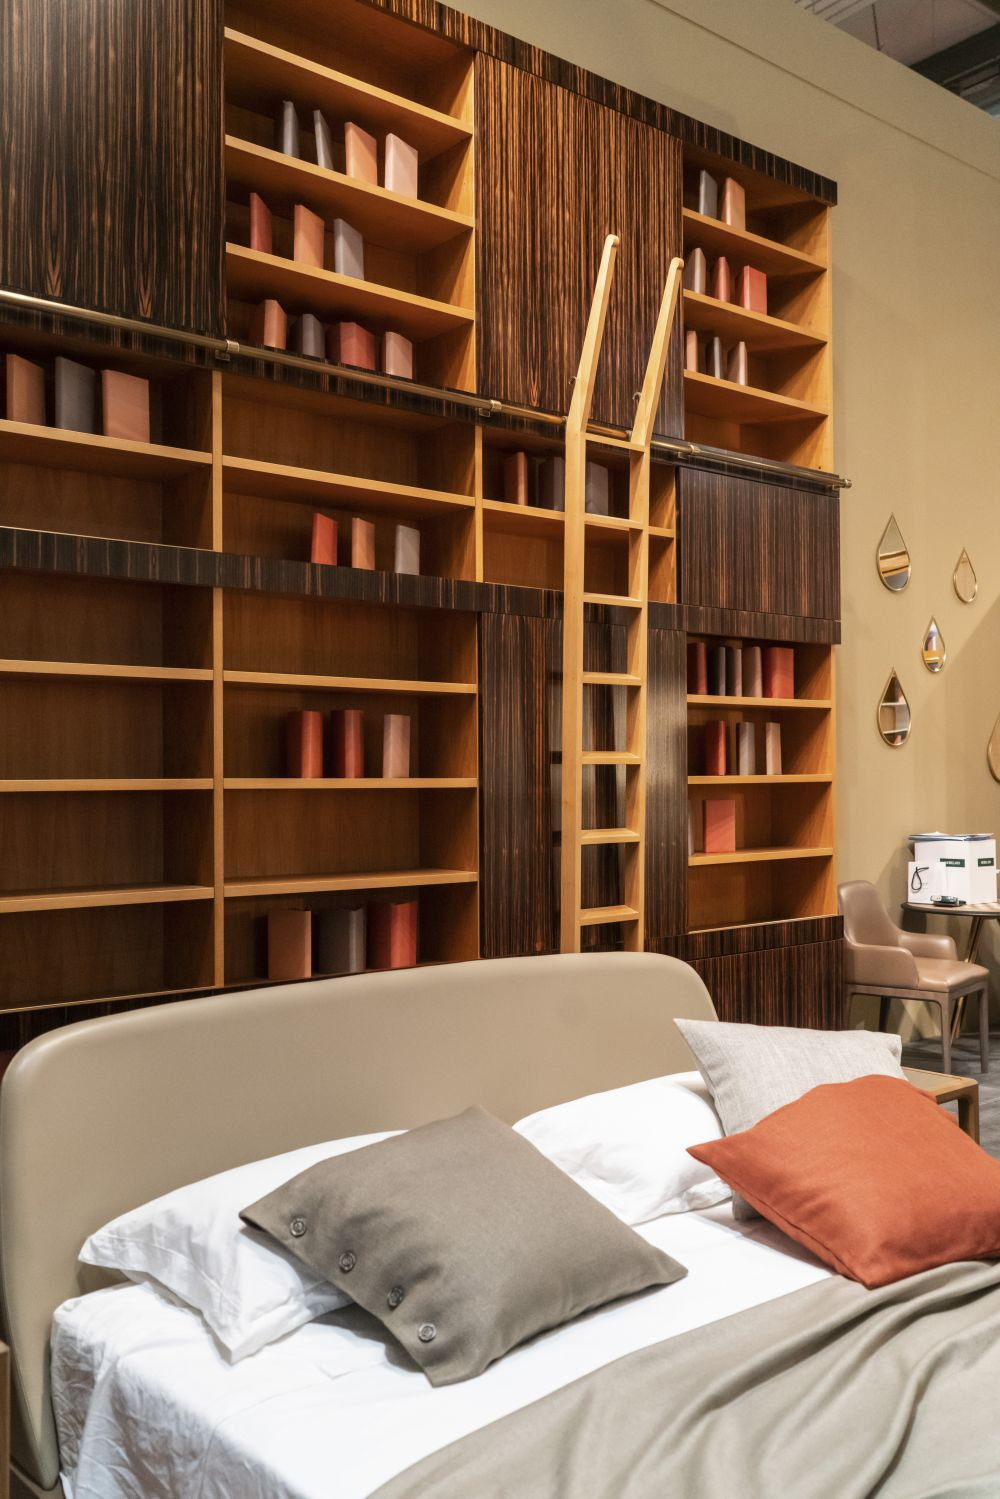 charming ways to integrate bookshelves into any space - Charming Ways To Integrate Bookshelves Into any Space